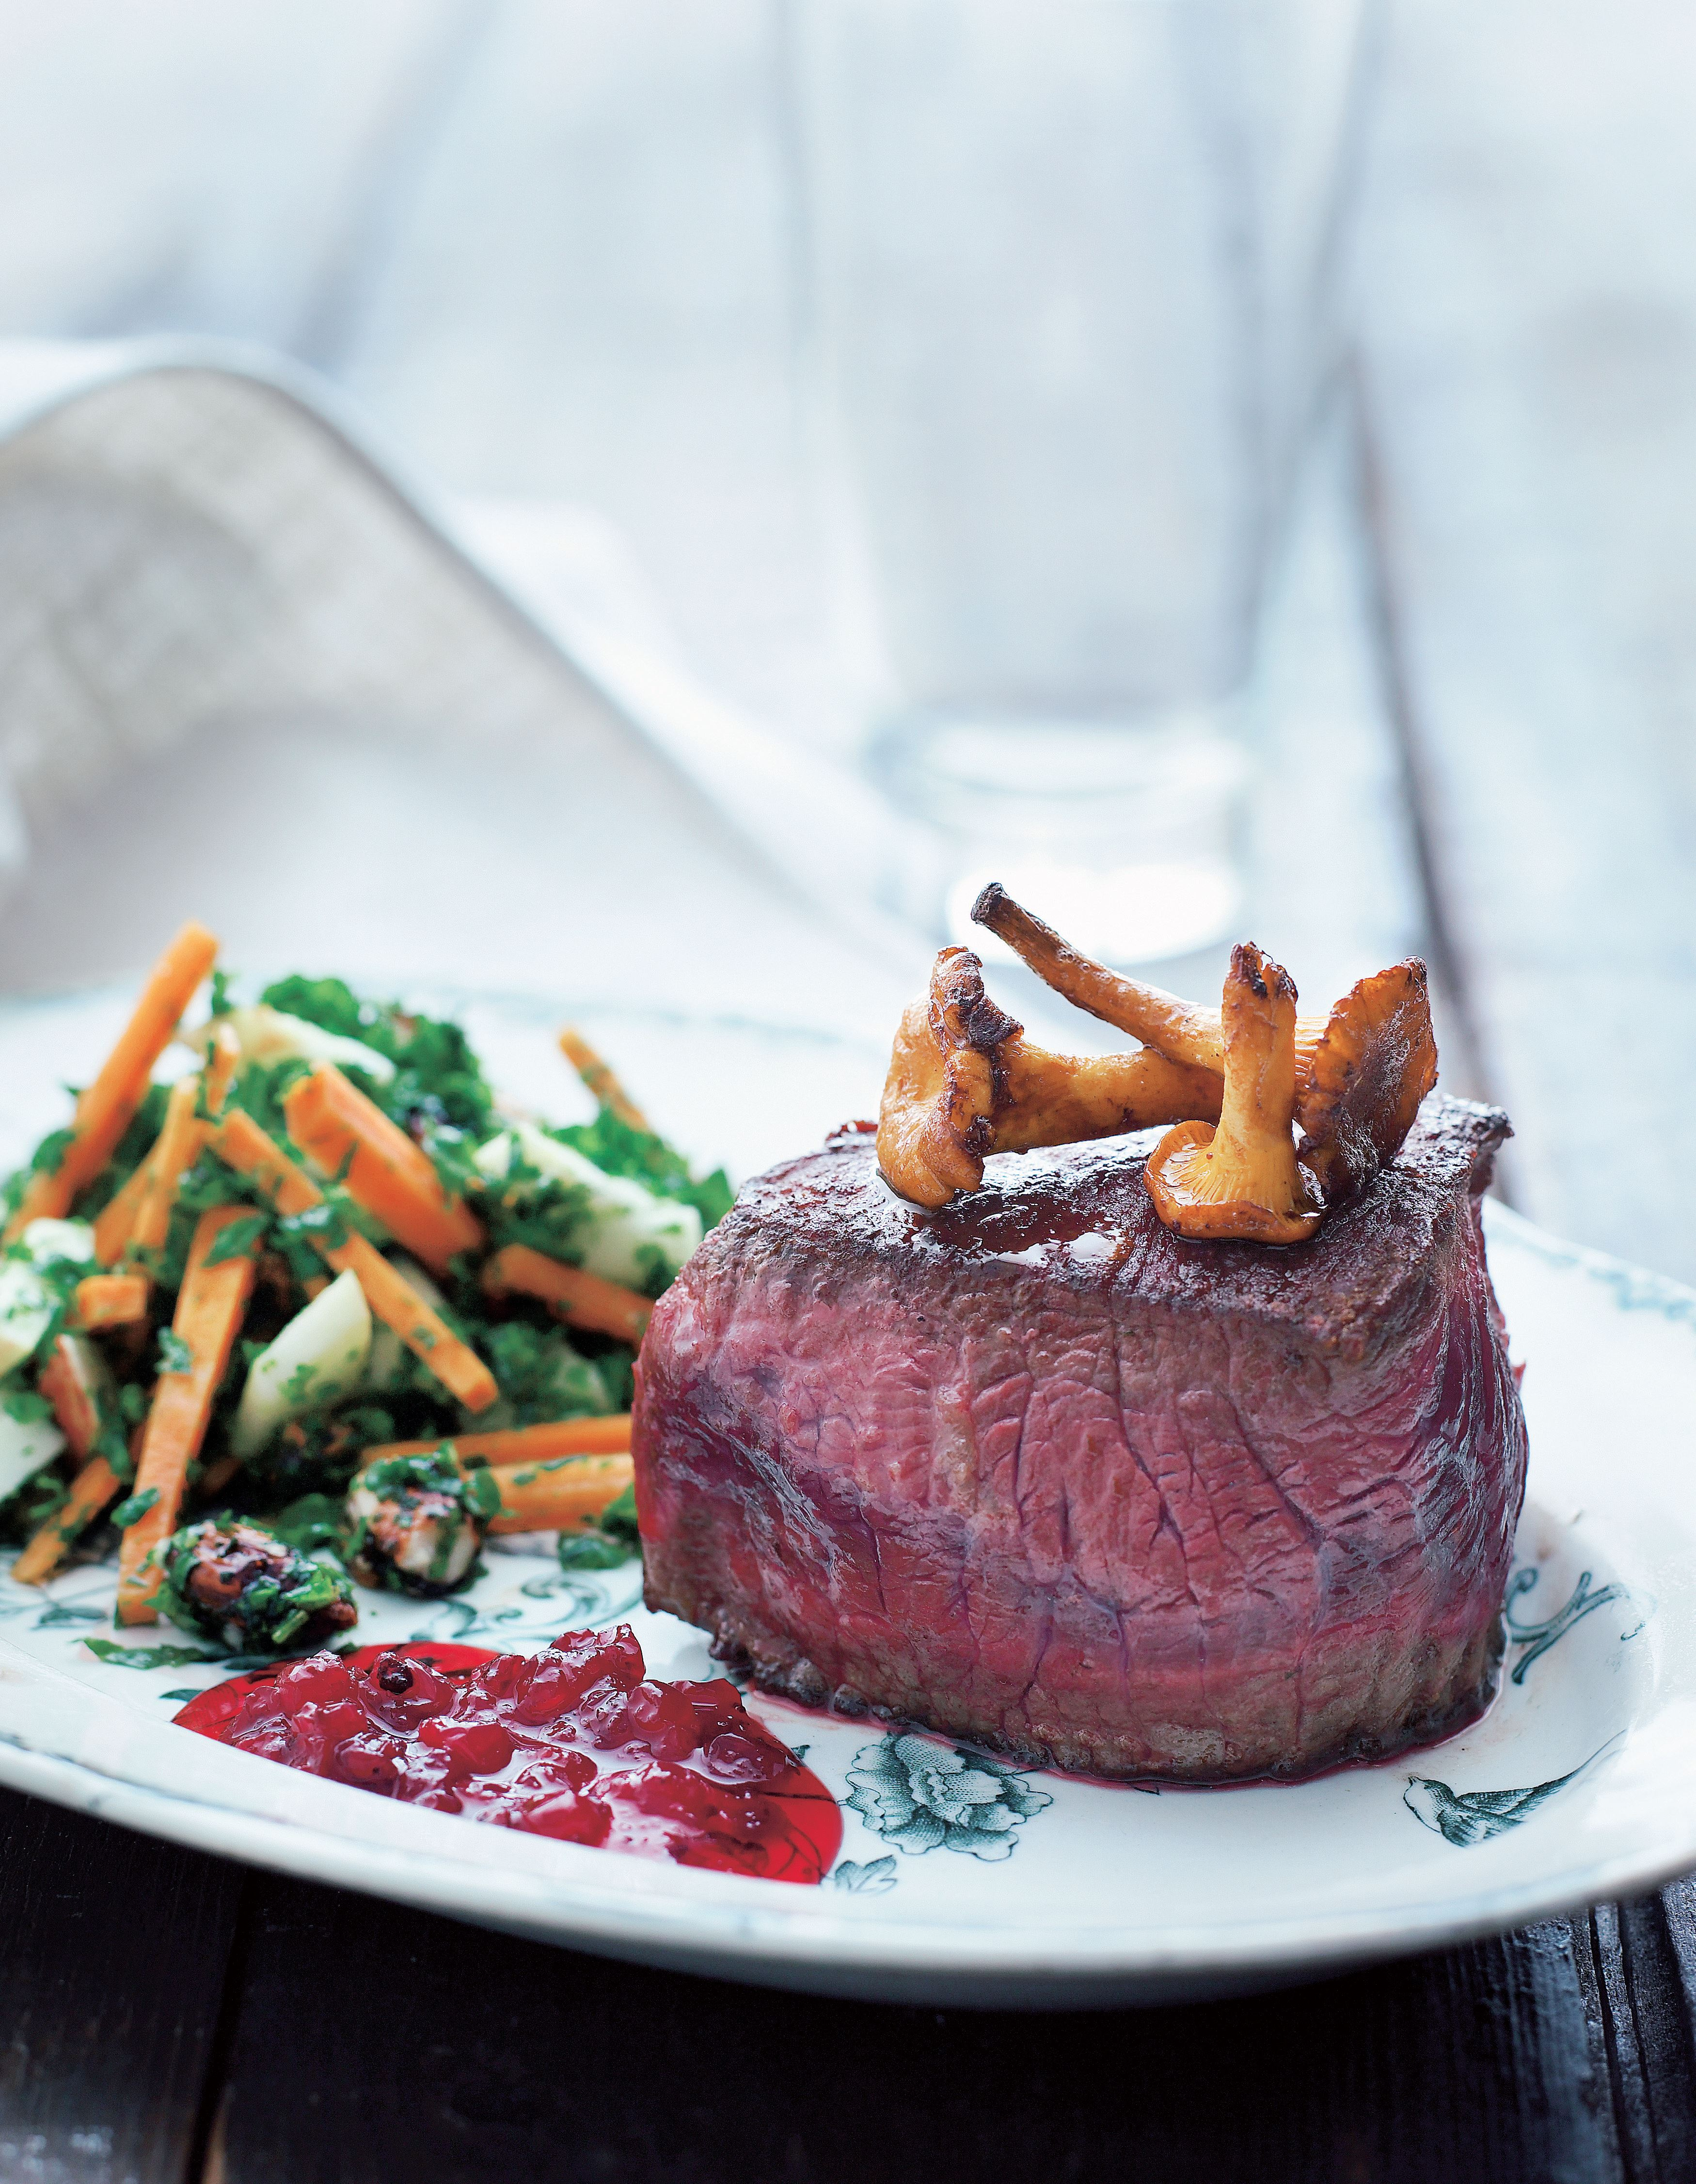 Moose tournedos with kale salad and cowberry compote